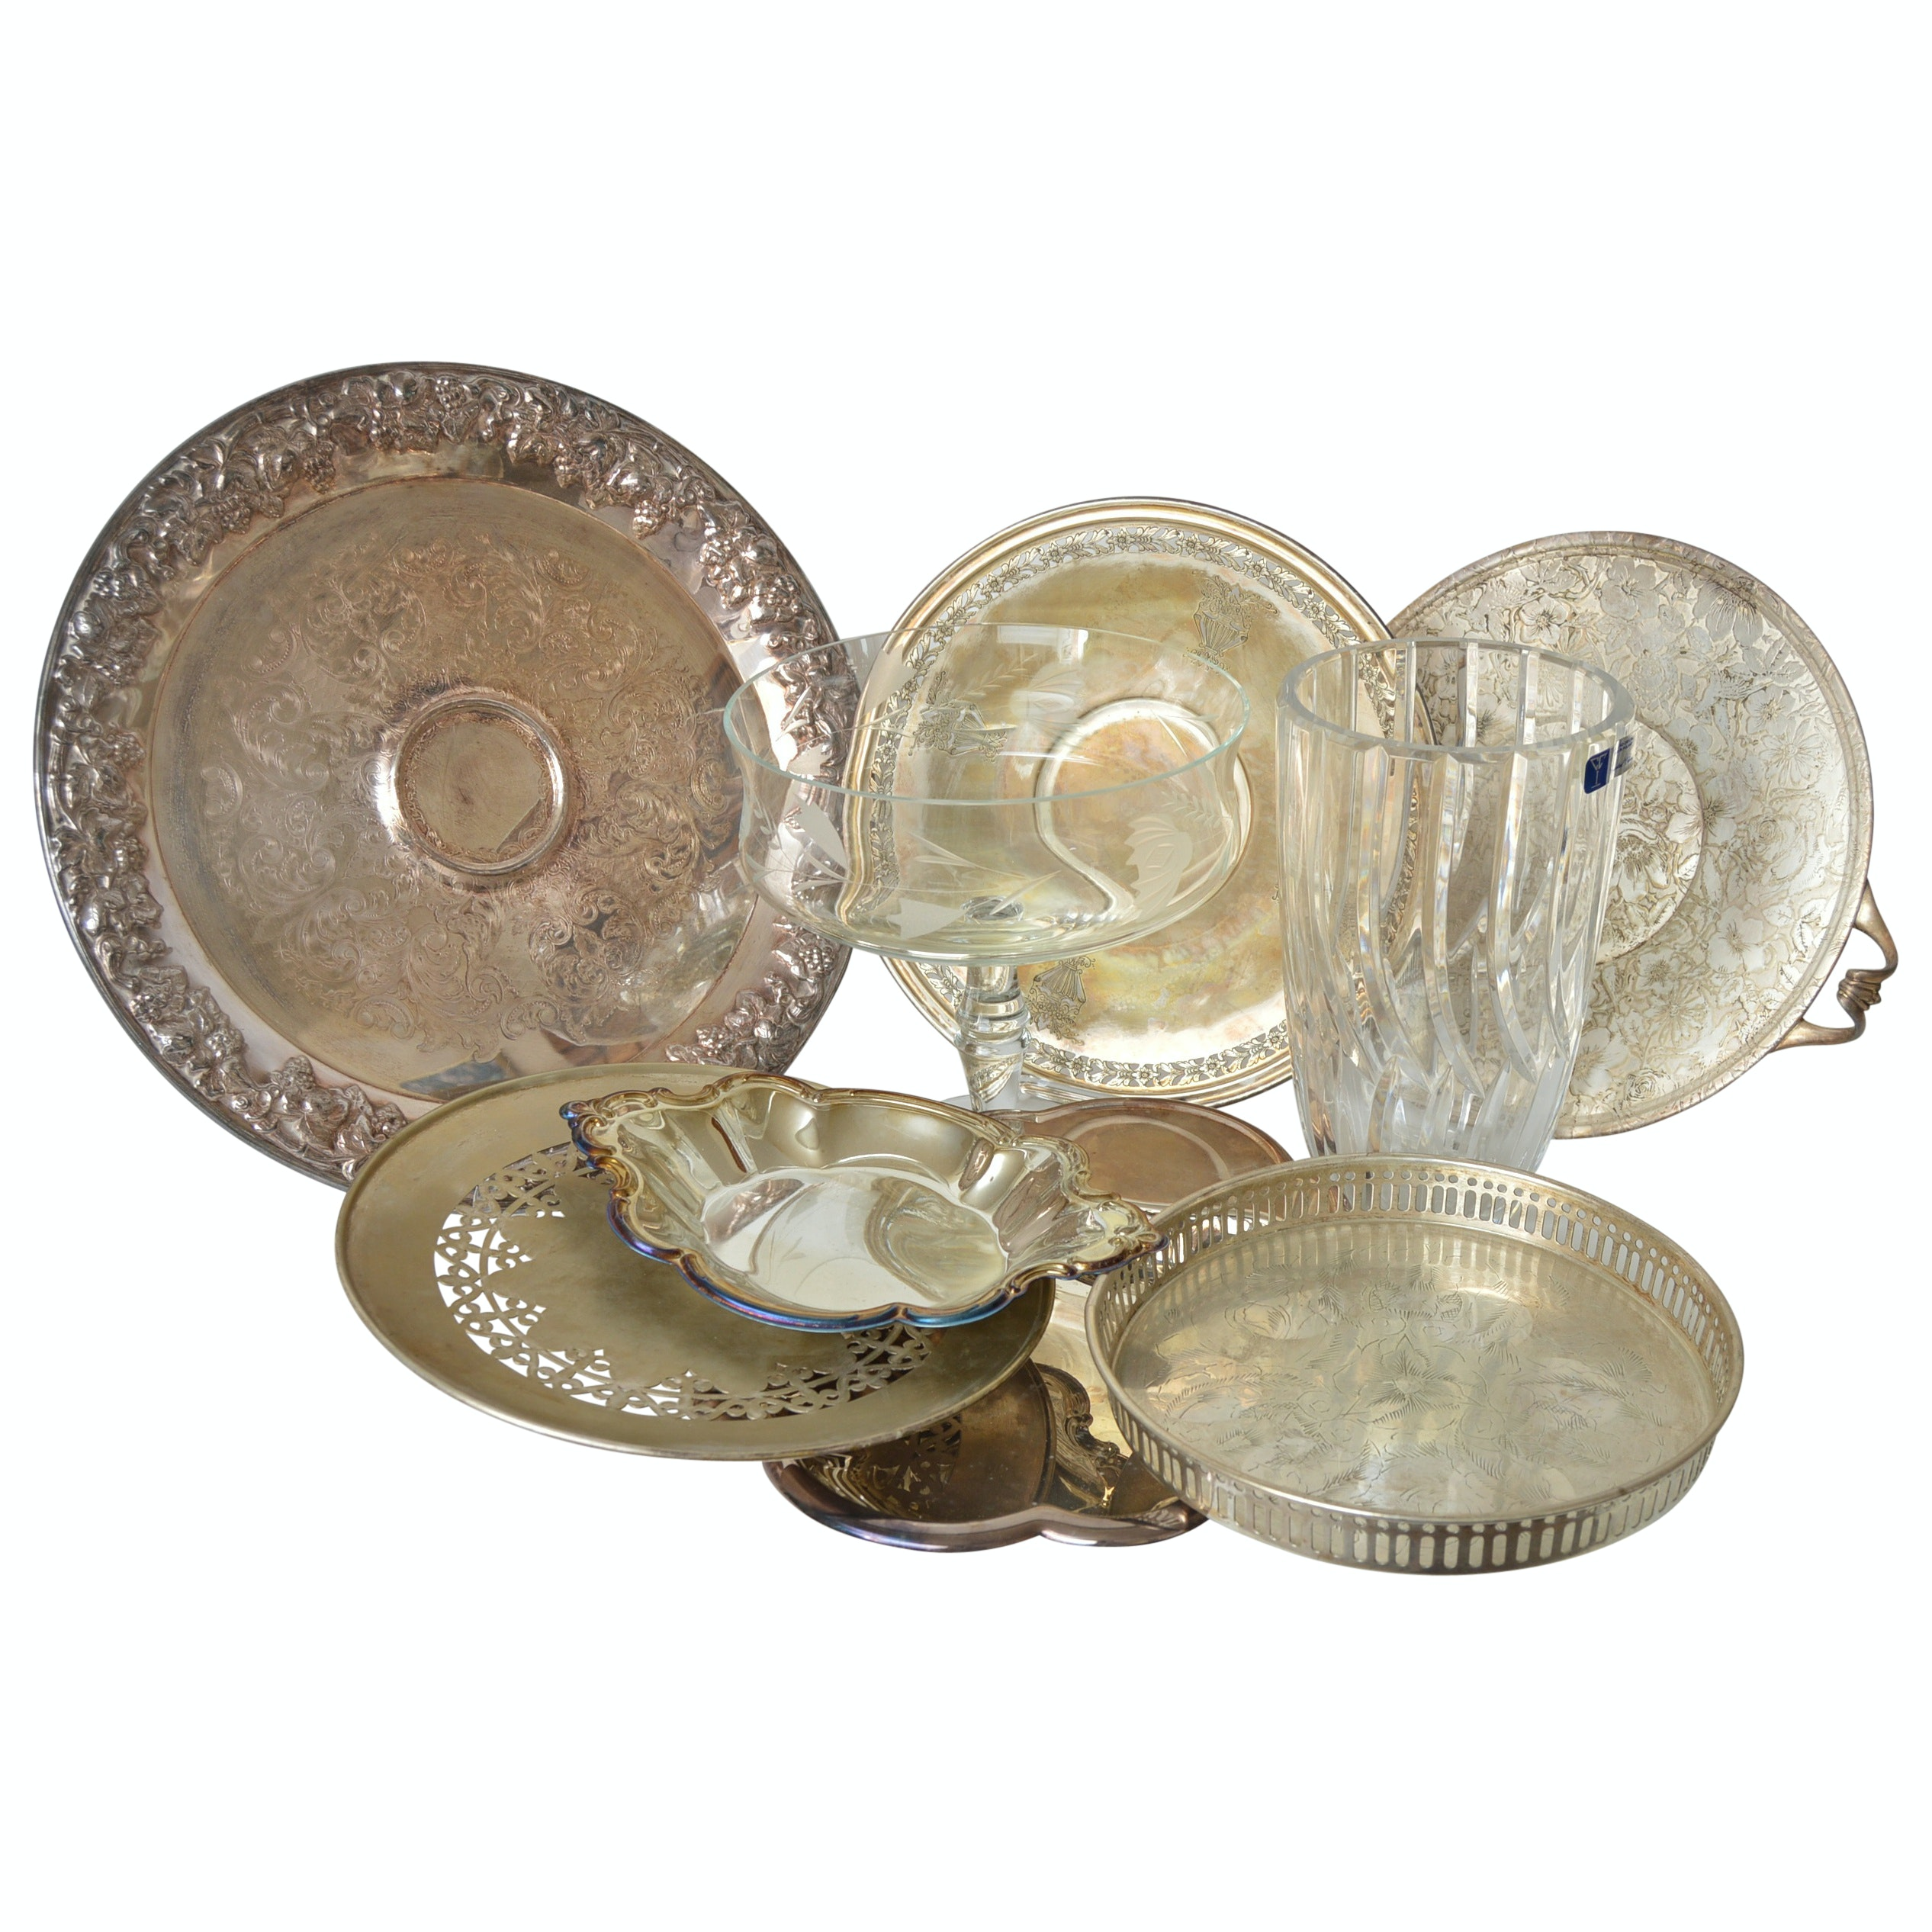 Collection of Silverplate and Crystal and Glass Tableware